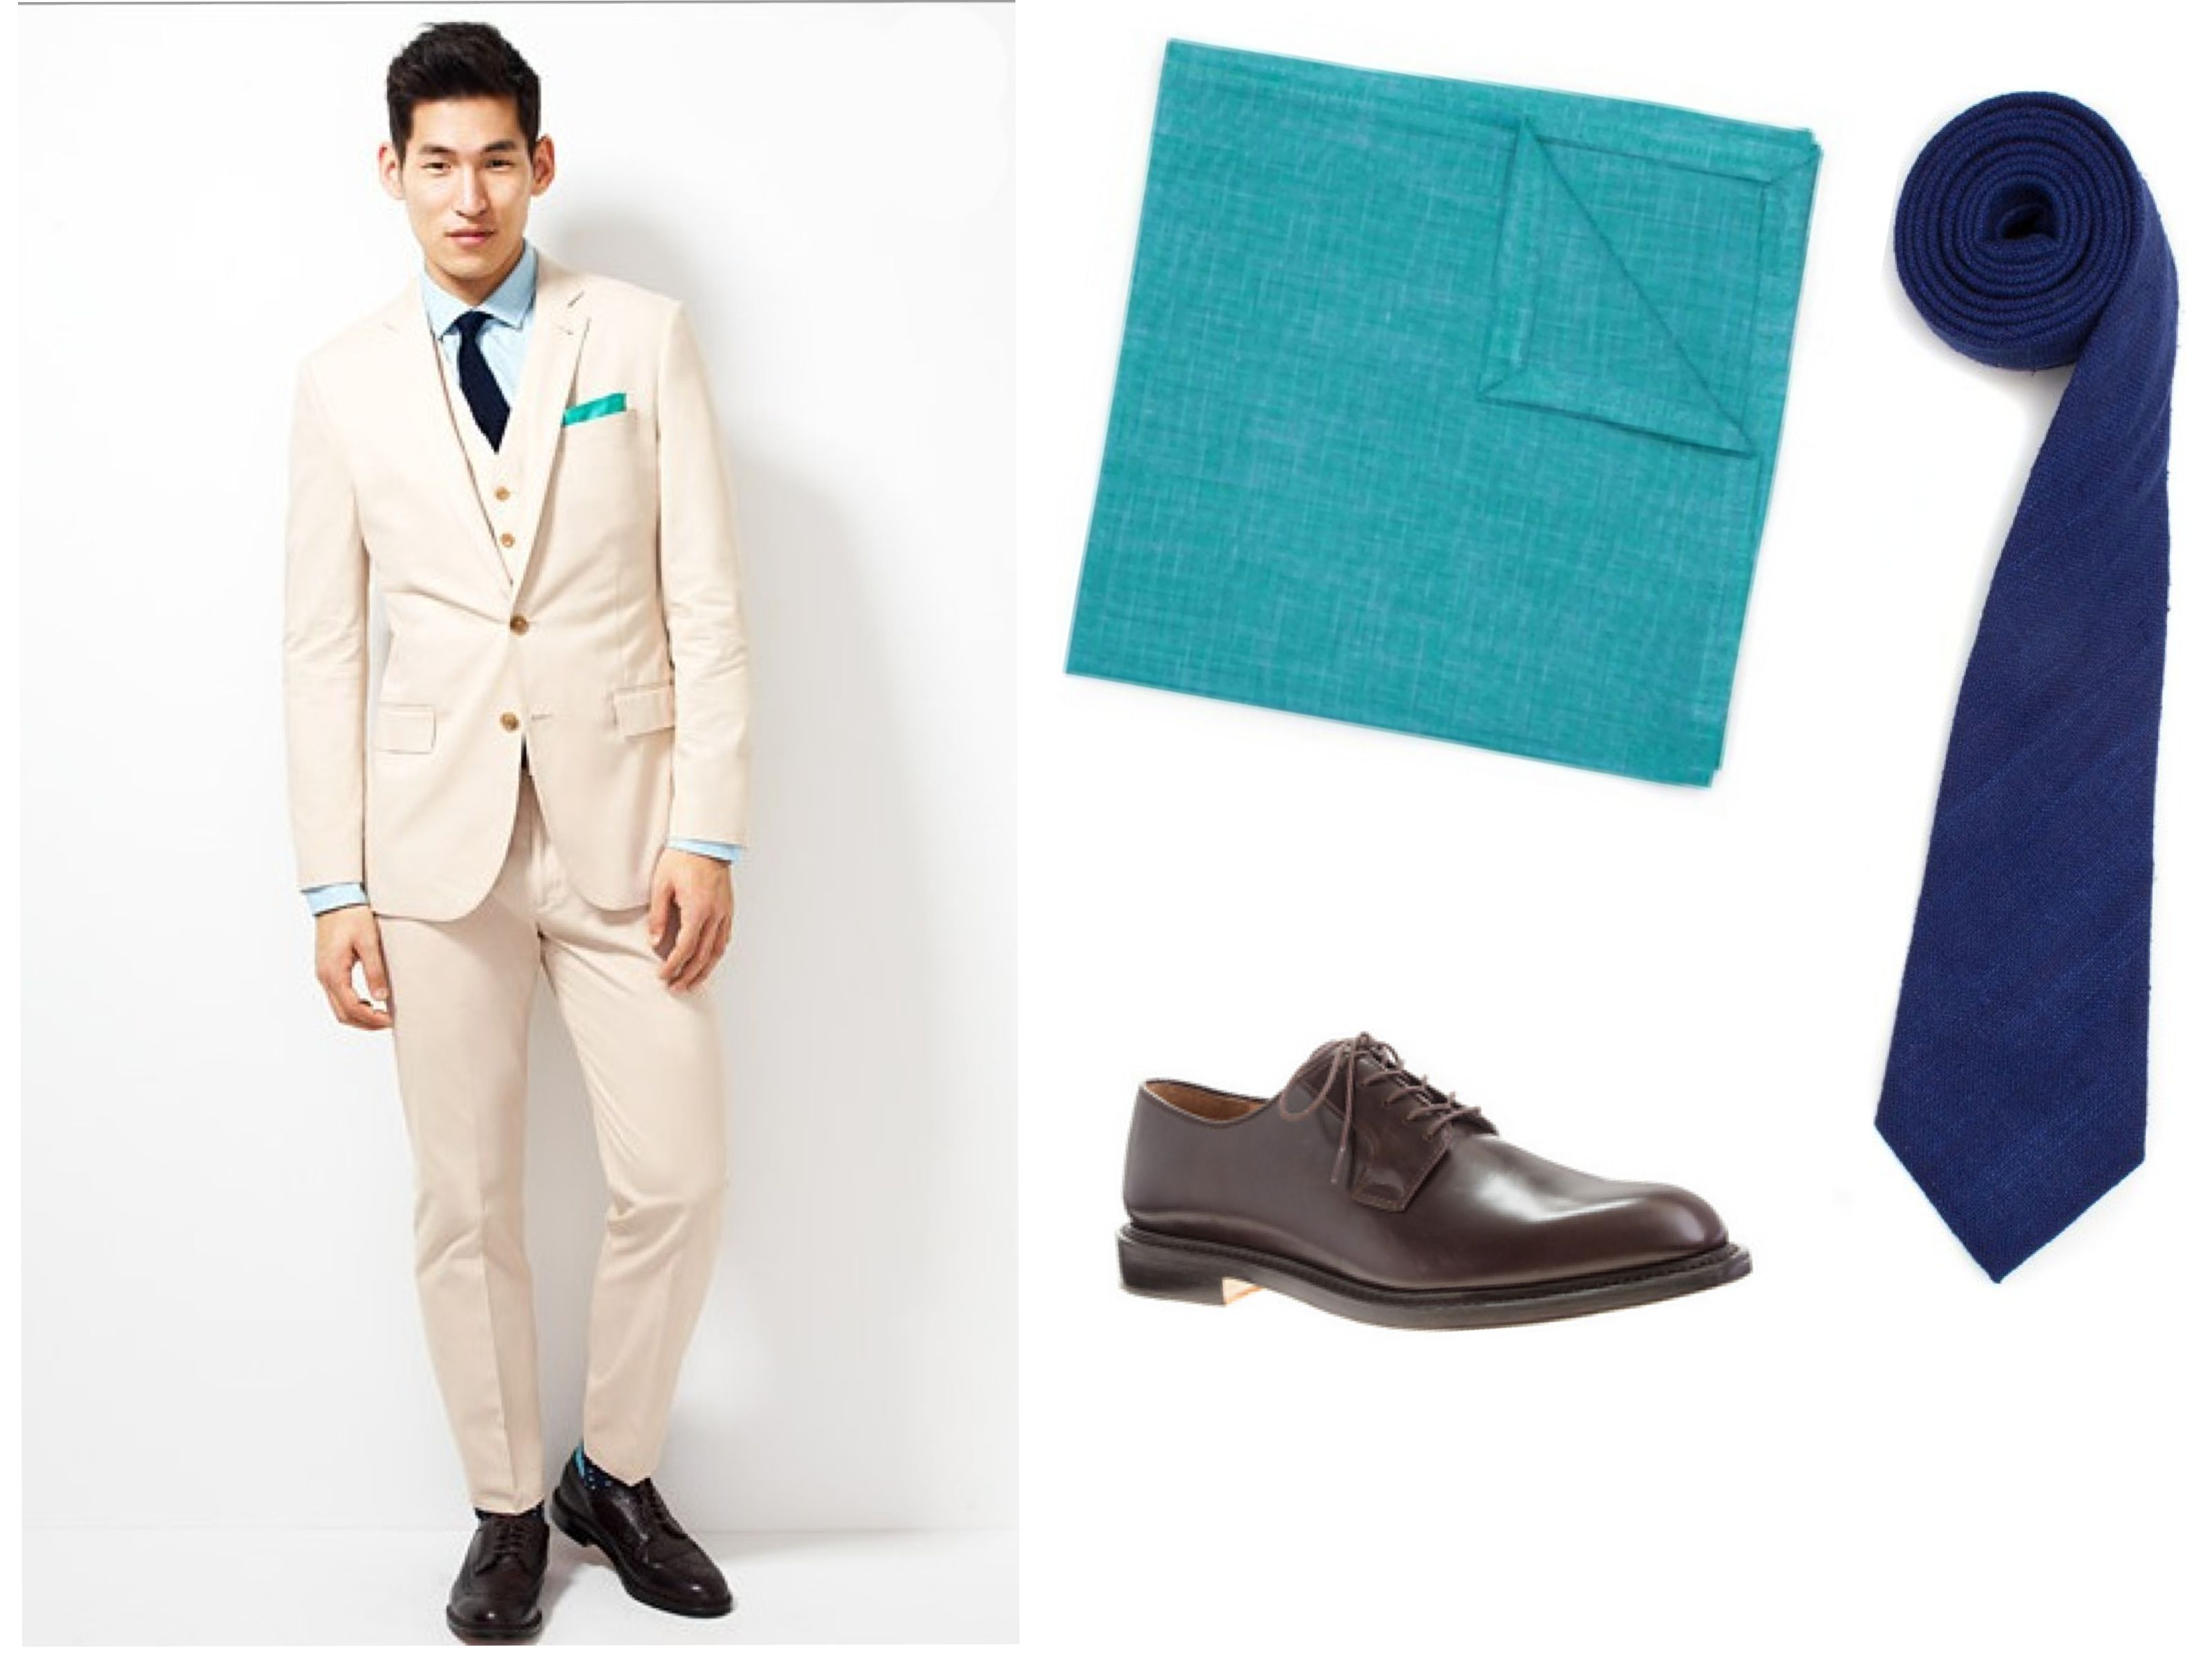 Finding The Right Outfit For The Groom - Rustic Wedding Chic